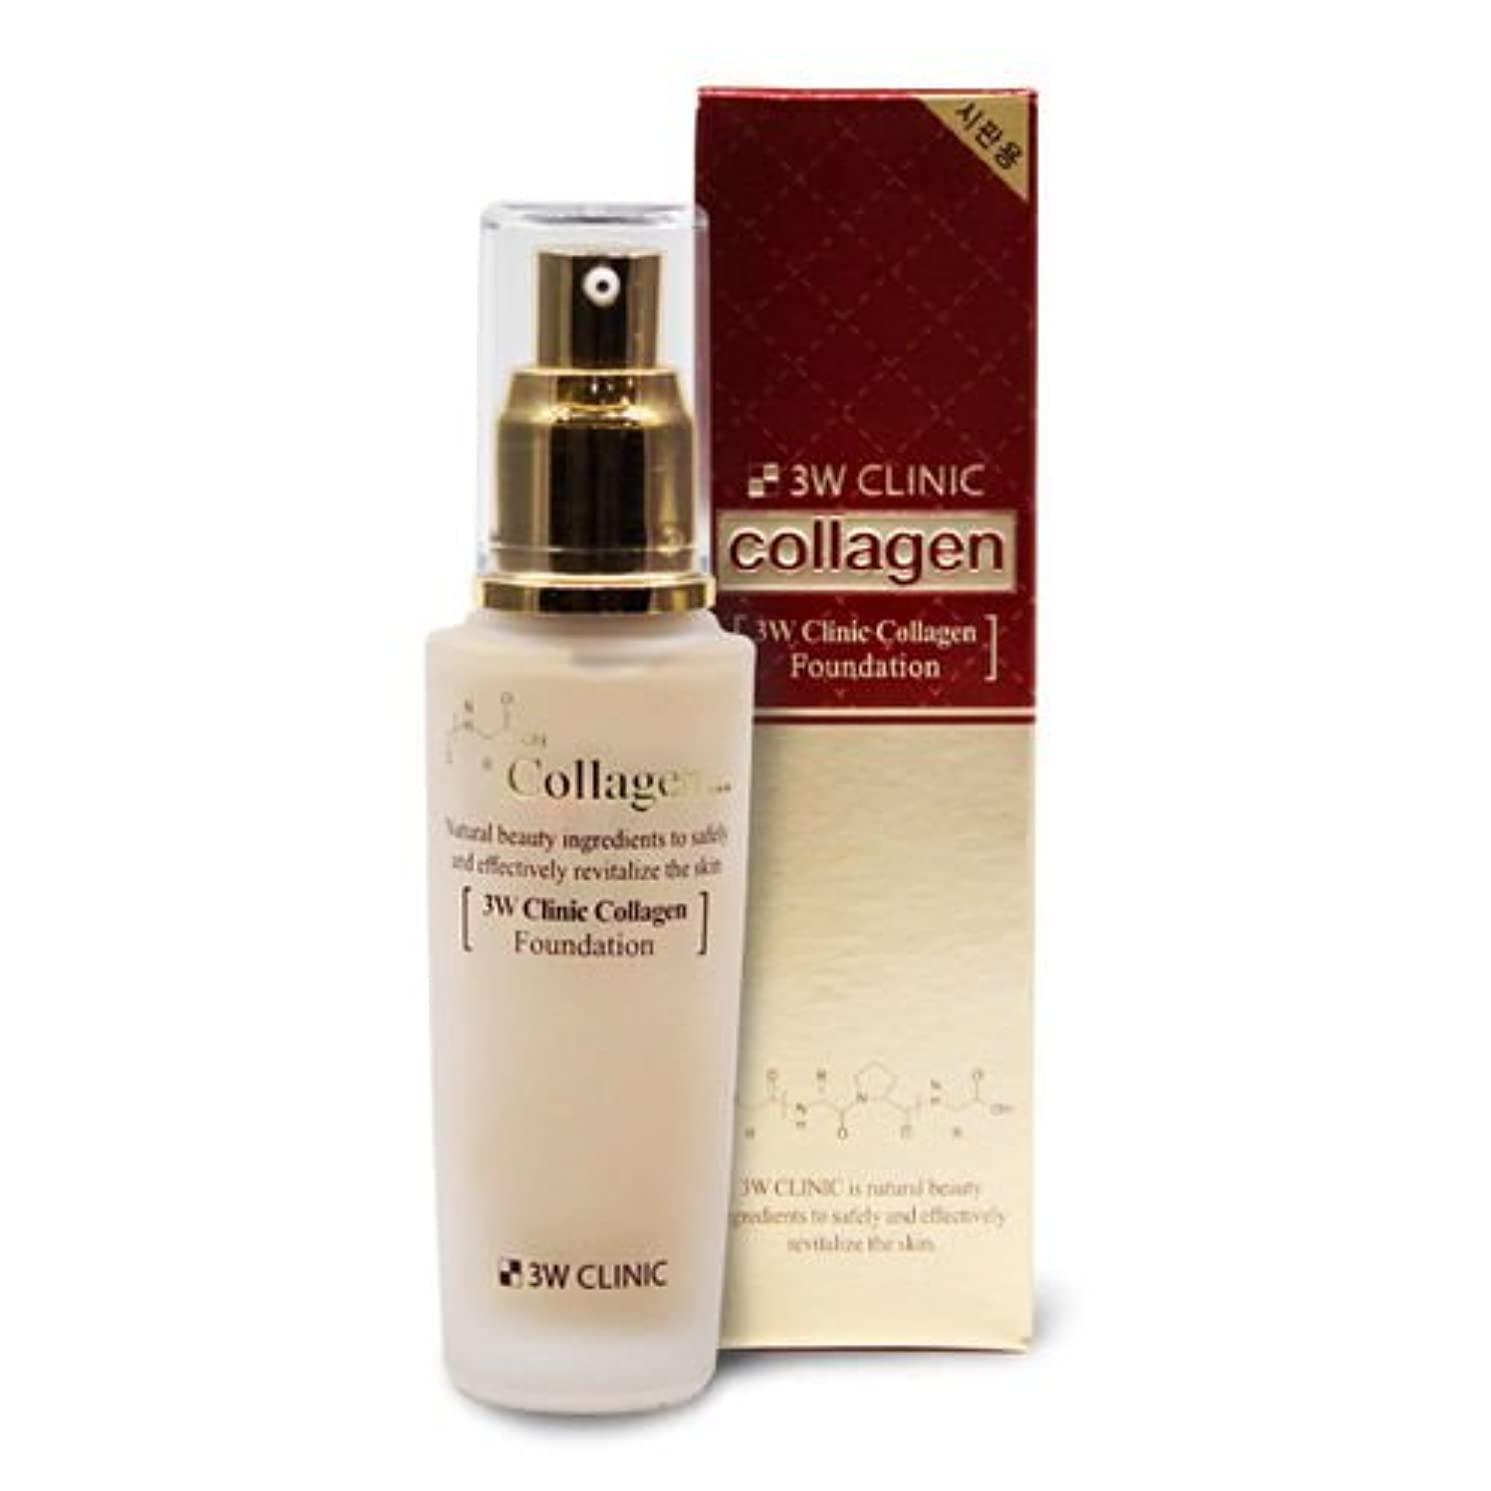 3Wクリニック[韓国コスメ3w Clinic]Collagen Foundation Perfect Cover Make-Up Base コラーゲンファンデーションパーフェクトカバーメイクアップベース50ml[並行輸入品...